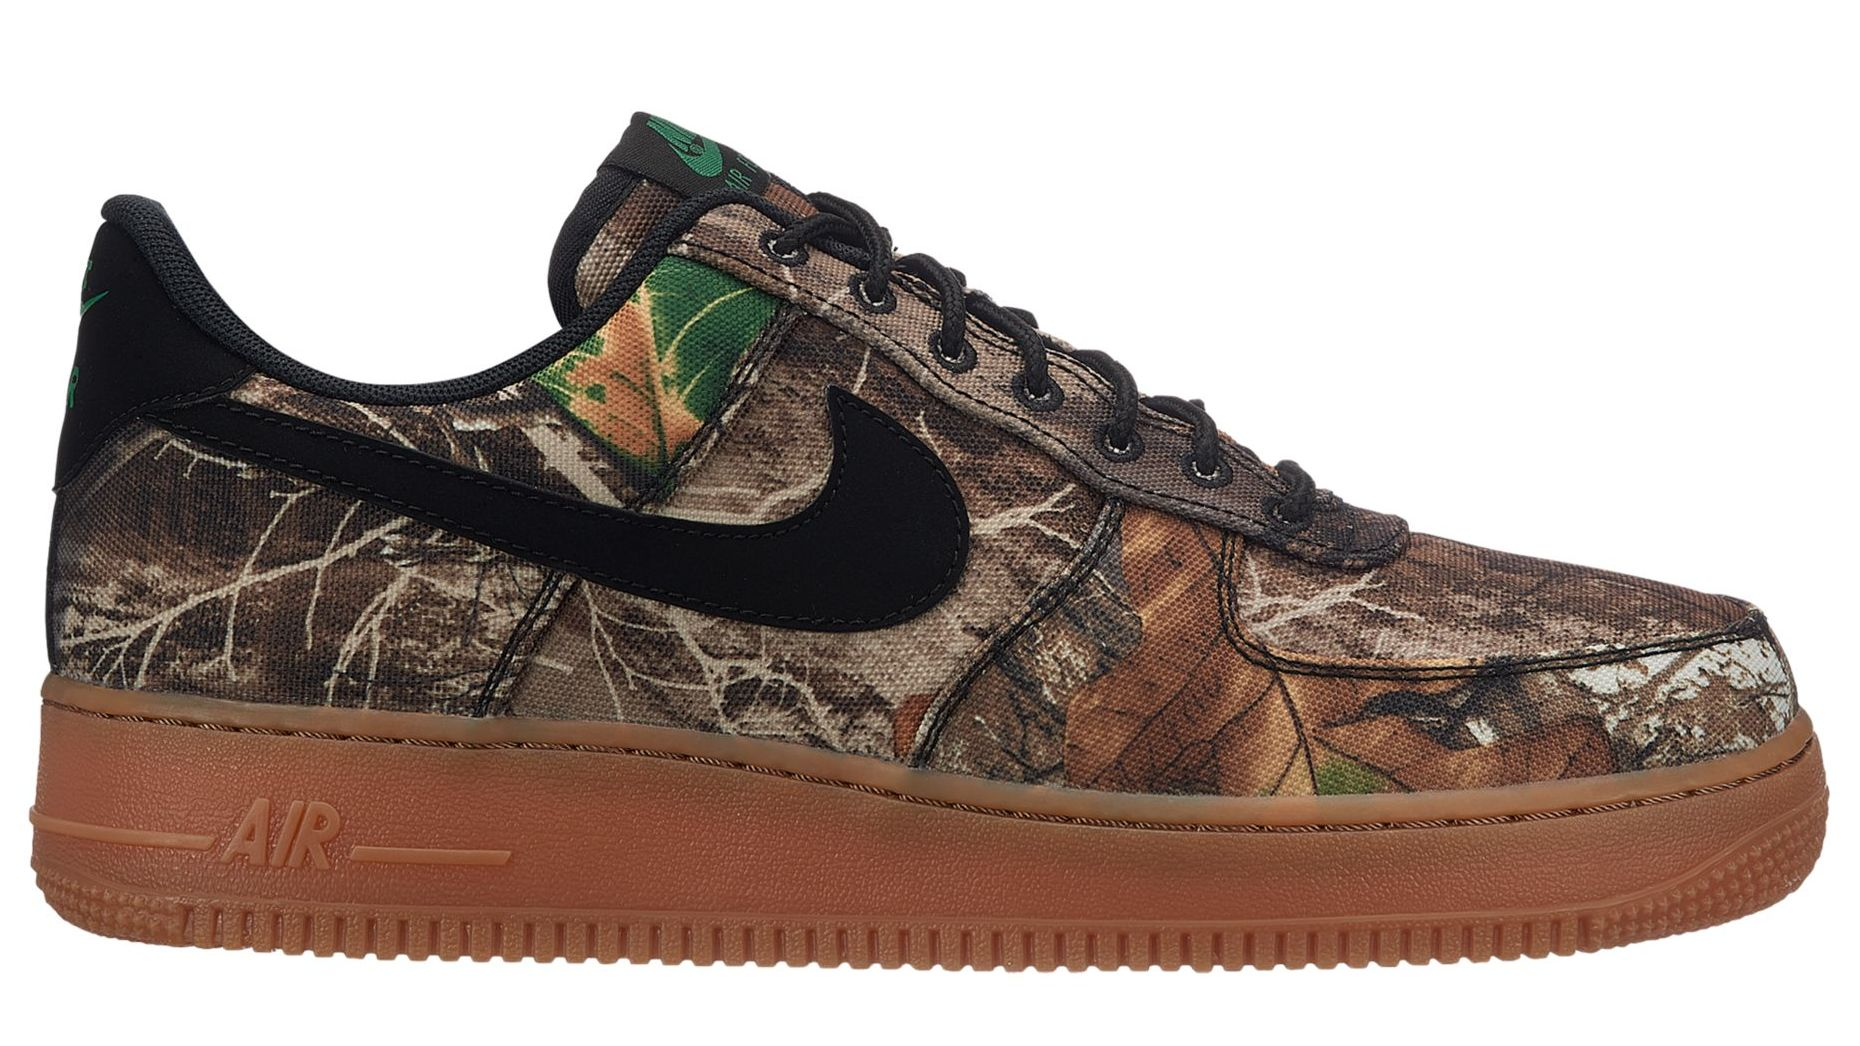 new product 565eb 321ff Nike Air Force 1 Low 'Realtree' Release Date | Sole Collector